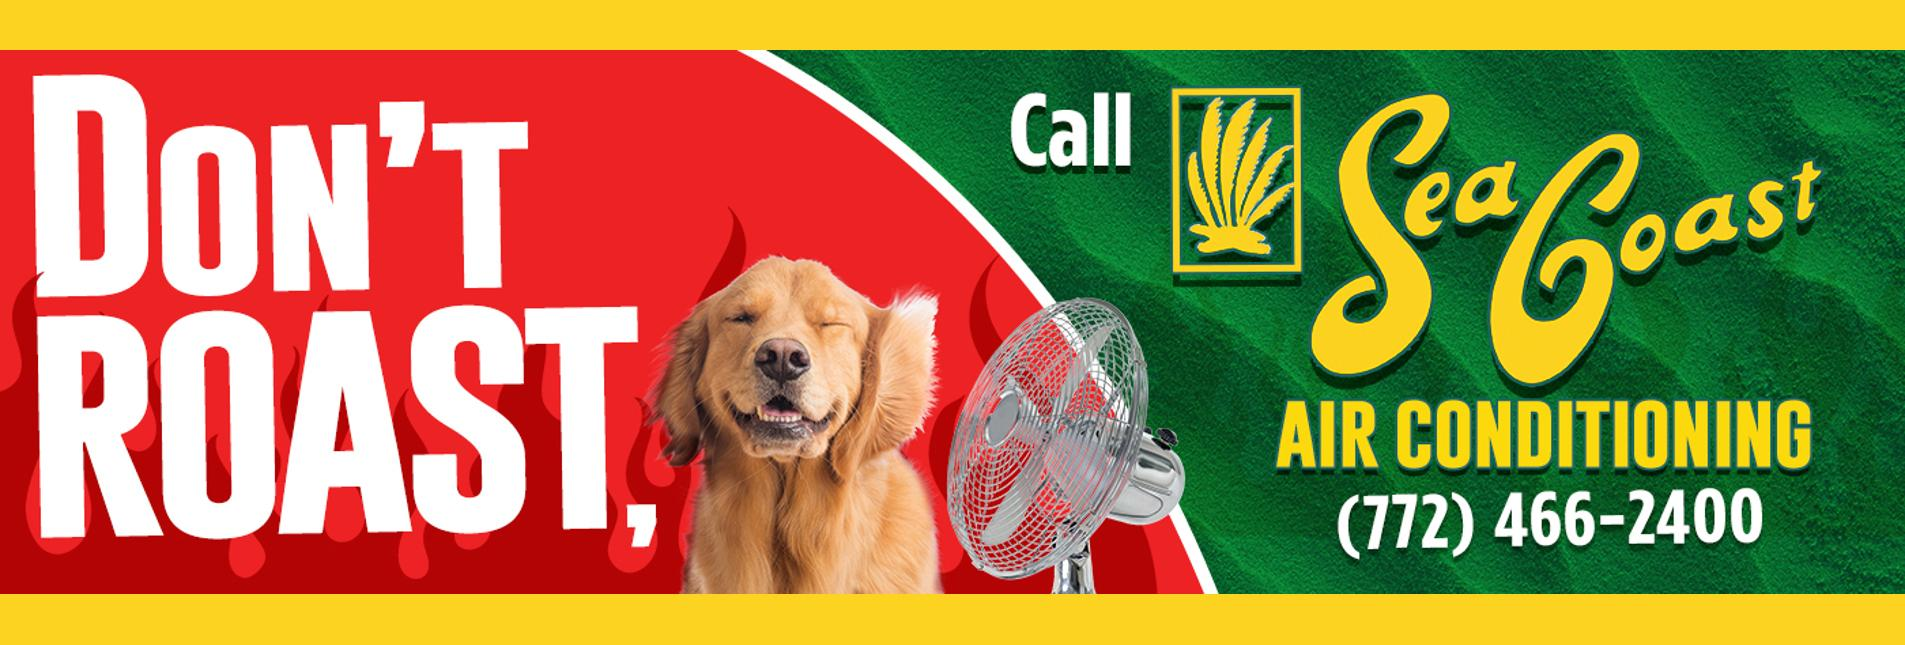 Call Sea Coast Air Conditioning Stuart FL